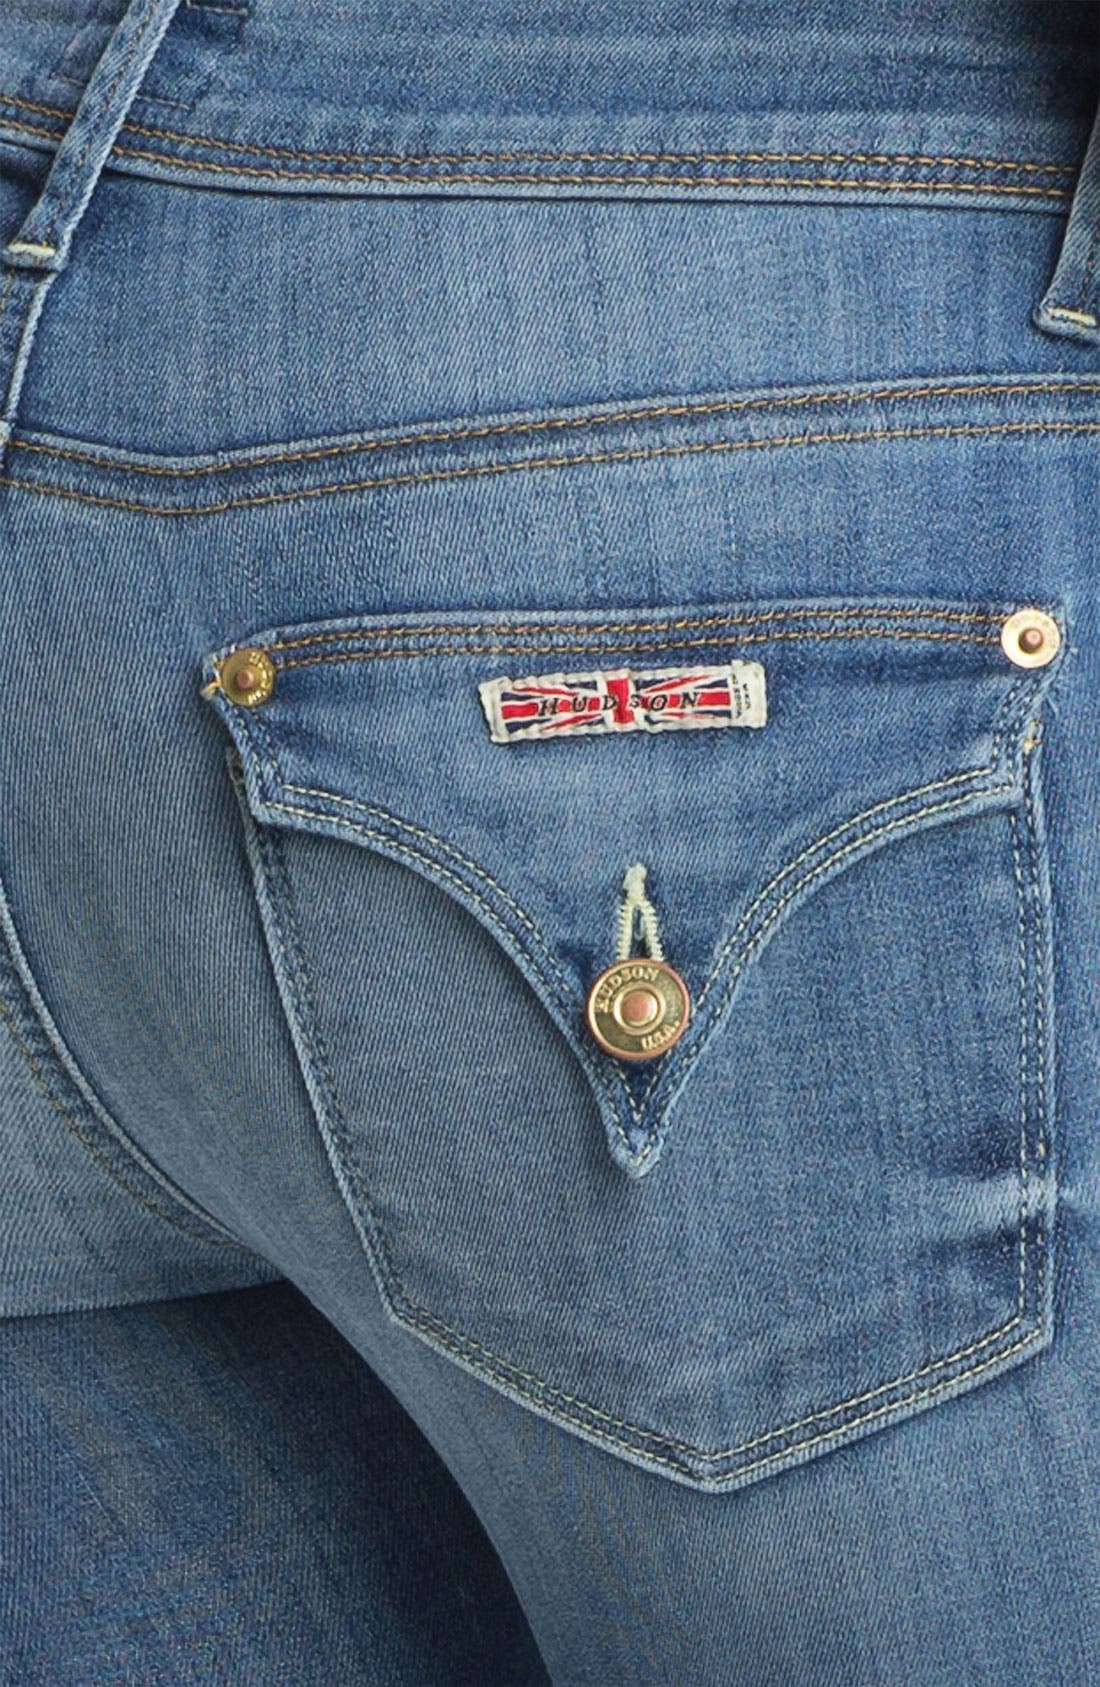 'Baby Boot' Crop Jeans,                             Alternate thumbnail 2, color,                             450